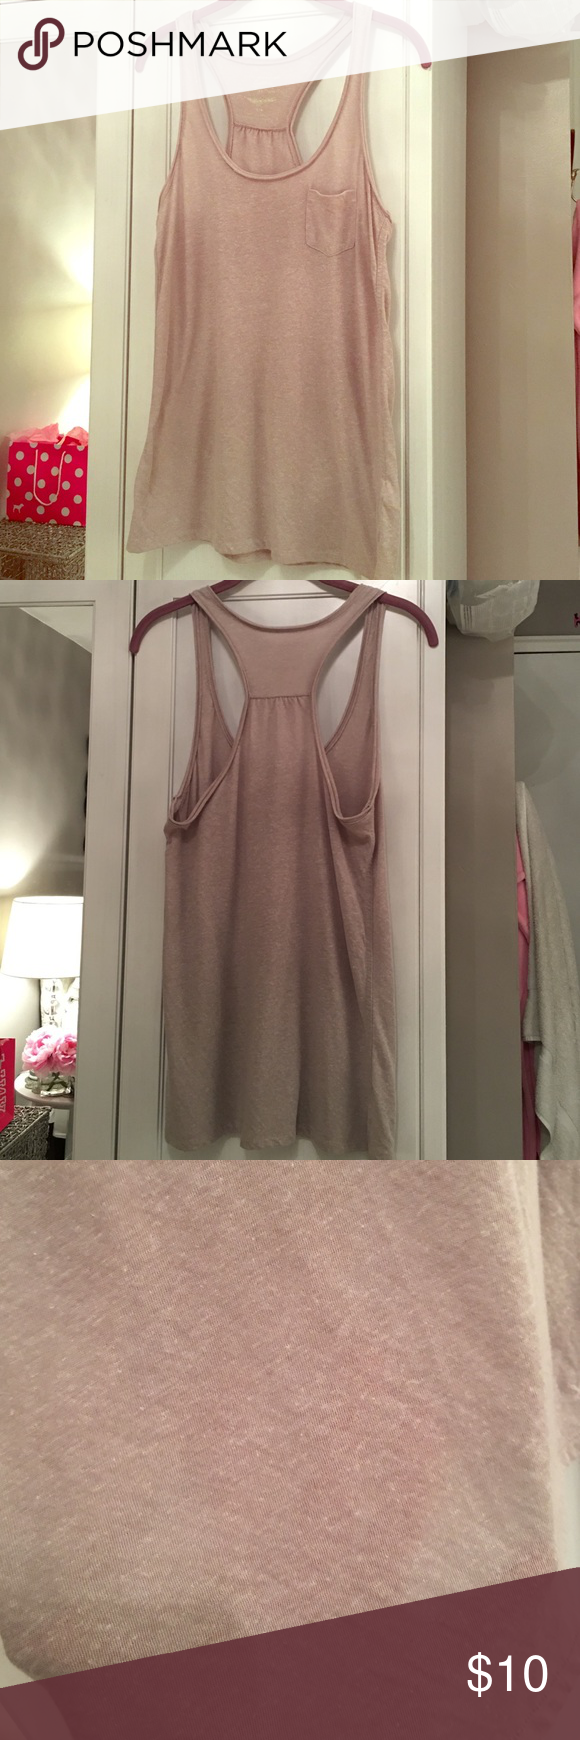 American Eagle Outfitters Tan Tank with Pocket.  American Eagles Outfitters Tan Tank with Pocket. Size M. It's in great condition! ❌ NO TRADES ❌ American Eagle Outfitters Tops Tank Tops